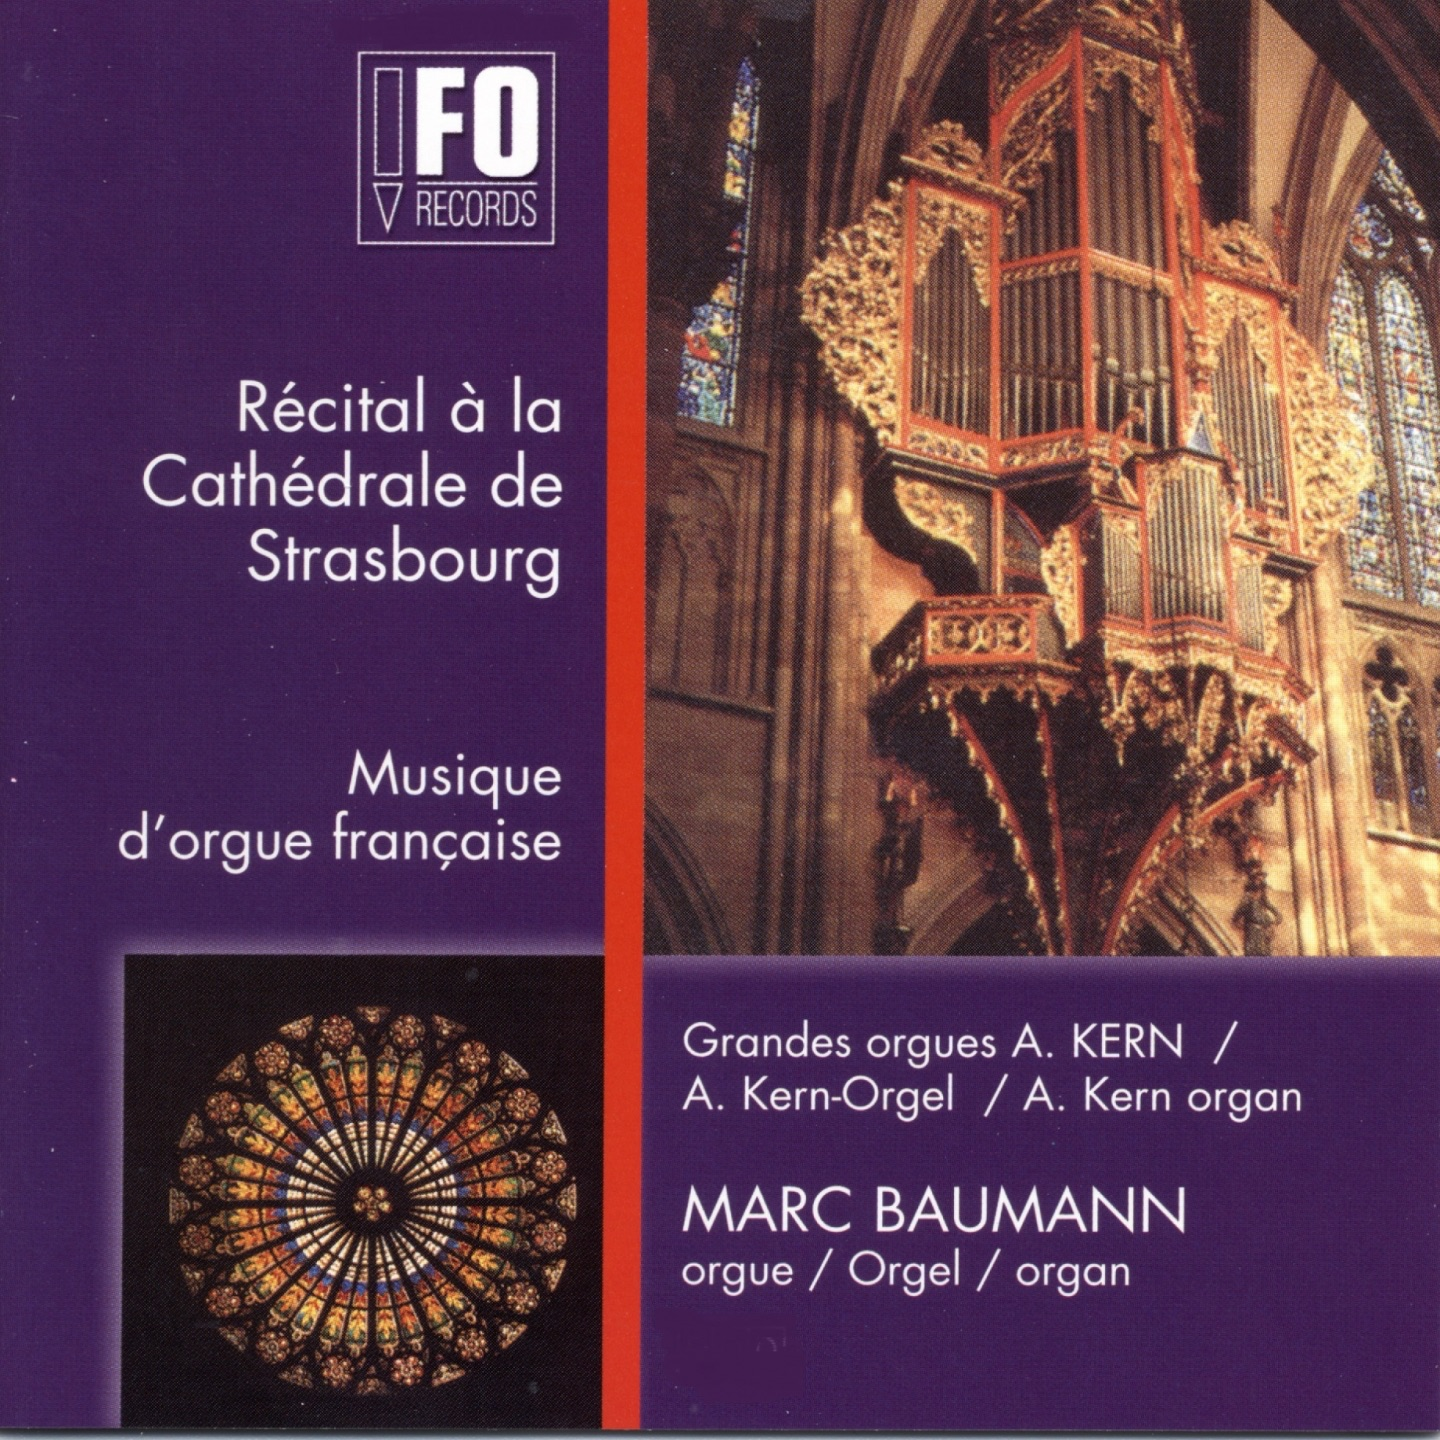 Sonate pour orgue No. 5 in C Minor, Op. 80: I. Allegro appassionato